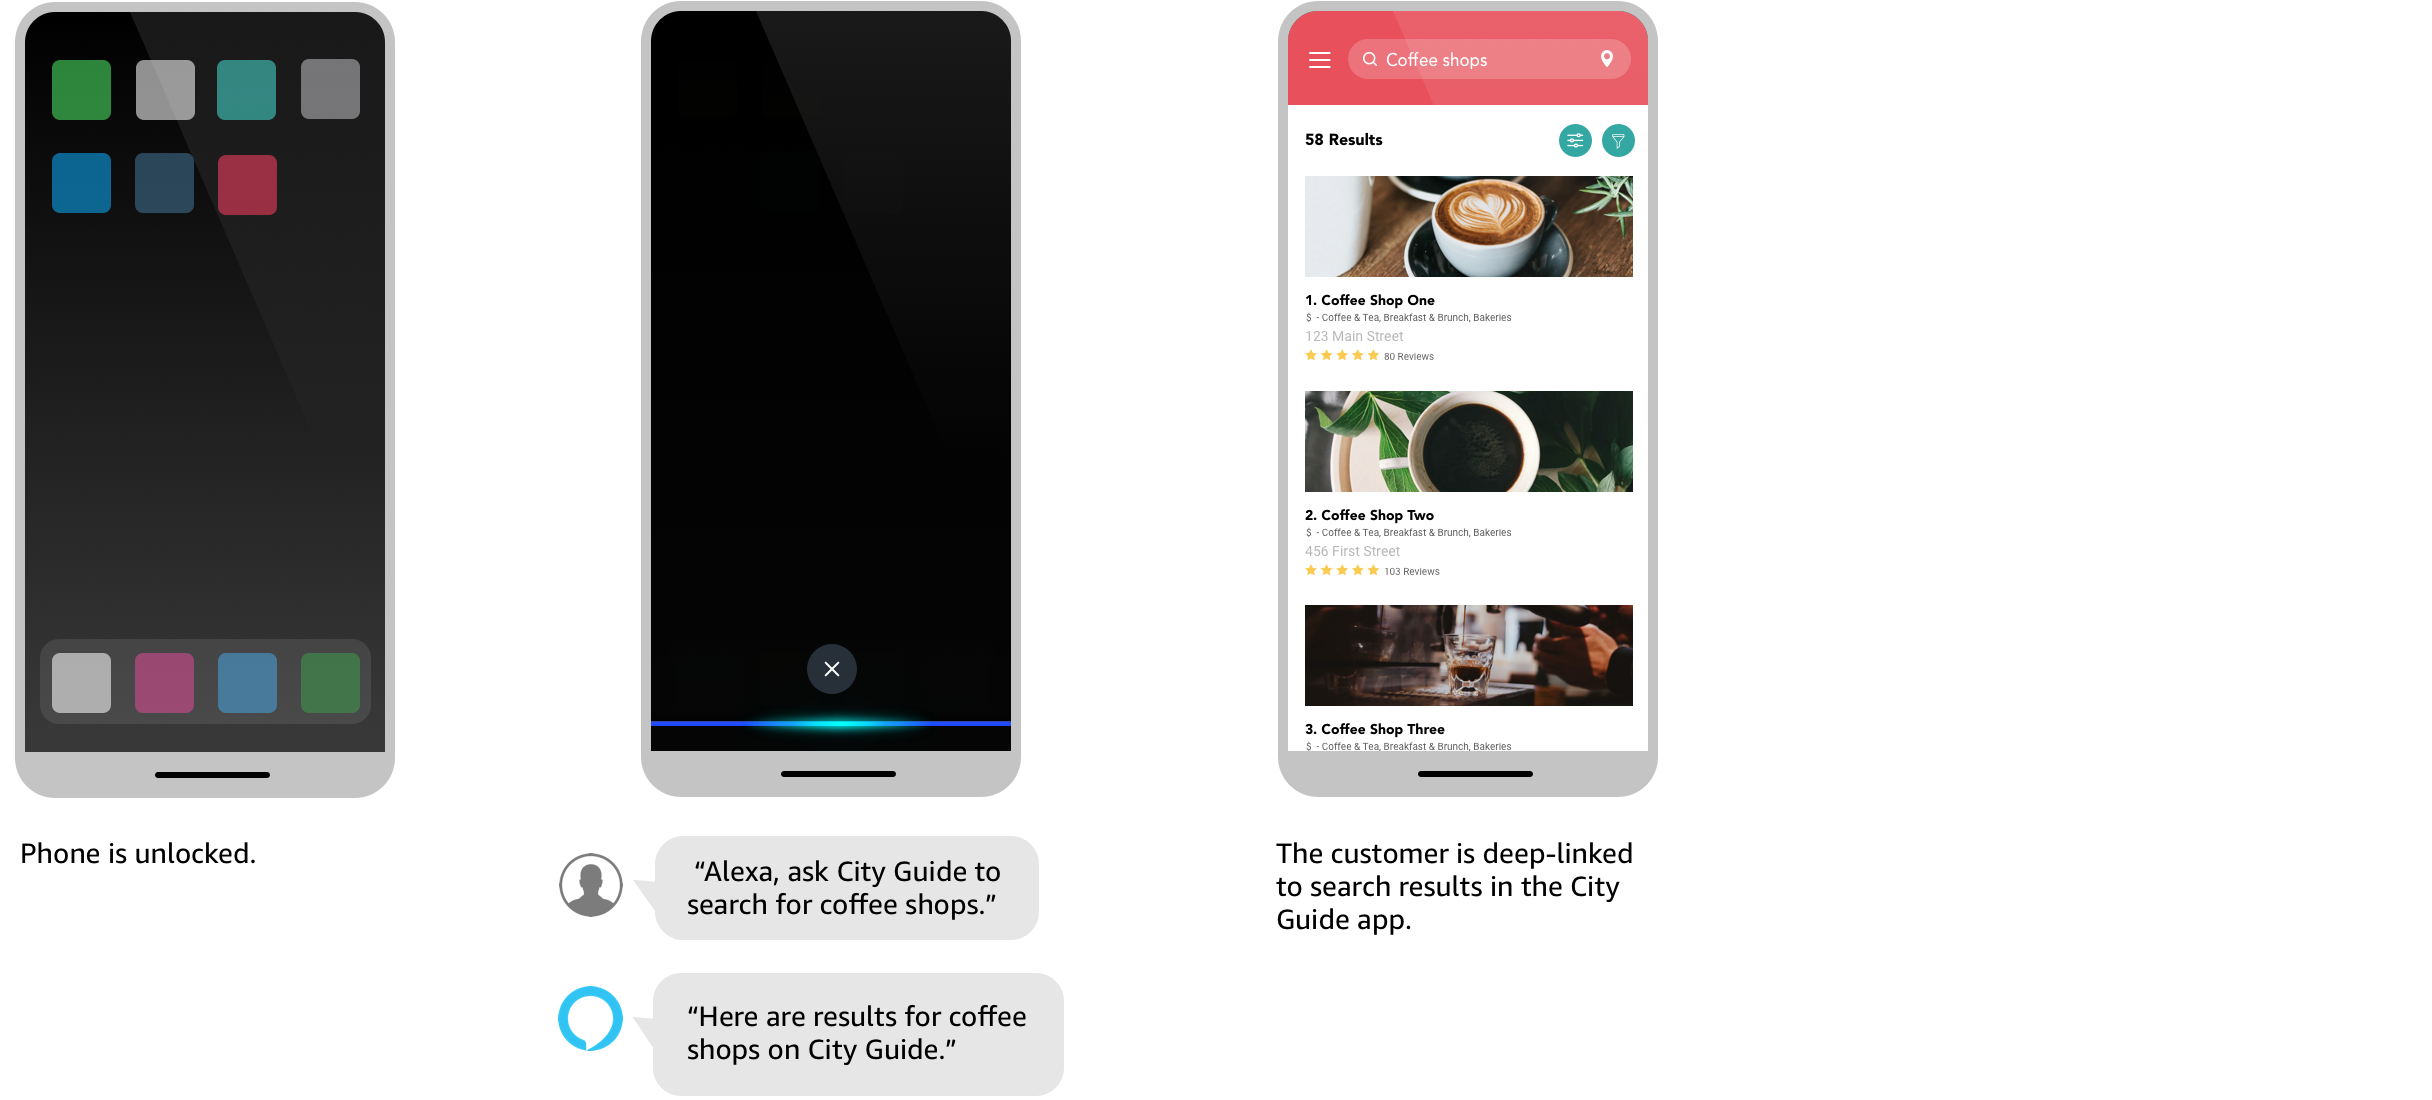 Image of the unlocked mobile phone experience with a custom response. Customer asks Alexa to ask City Guide to search for coffee shops. Alexa responds with Here are the results for coffee shops on City Guide. The customer is deep-linked to the search results in the city guide app.